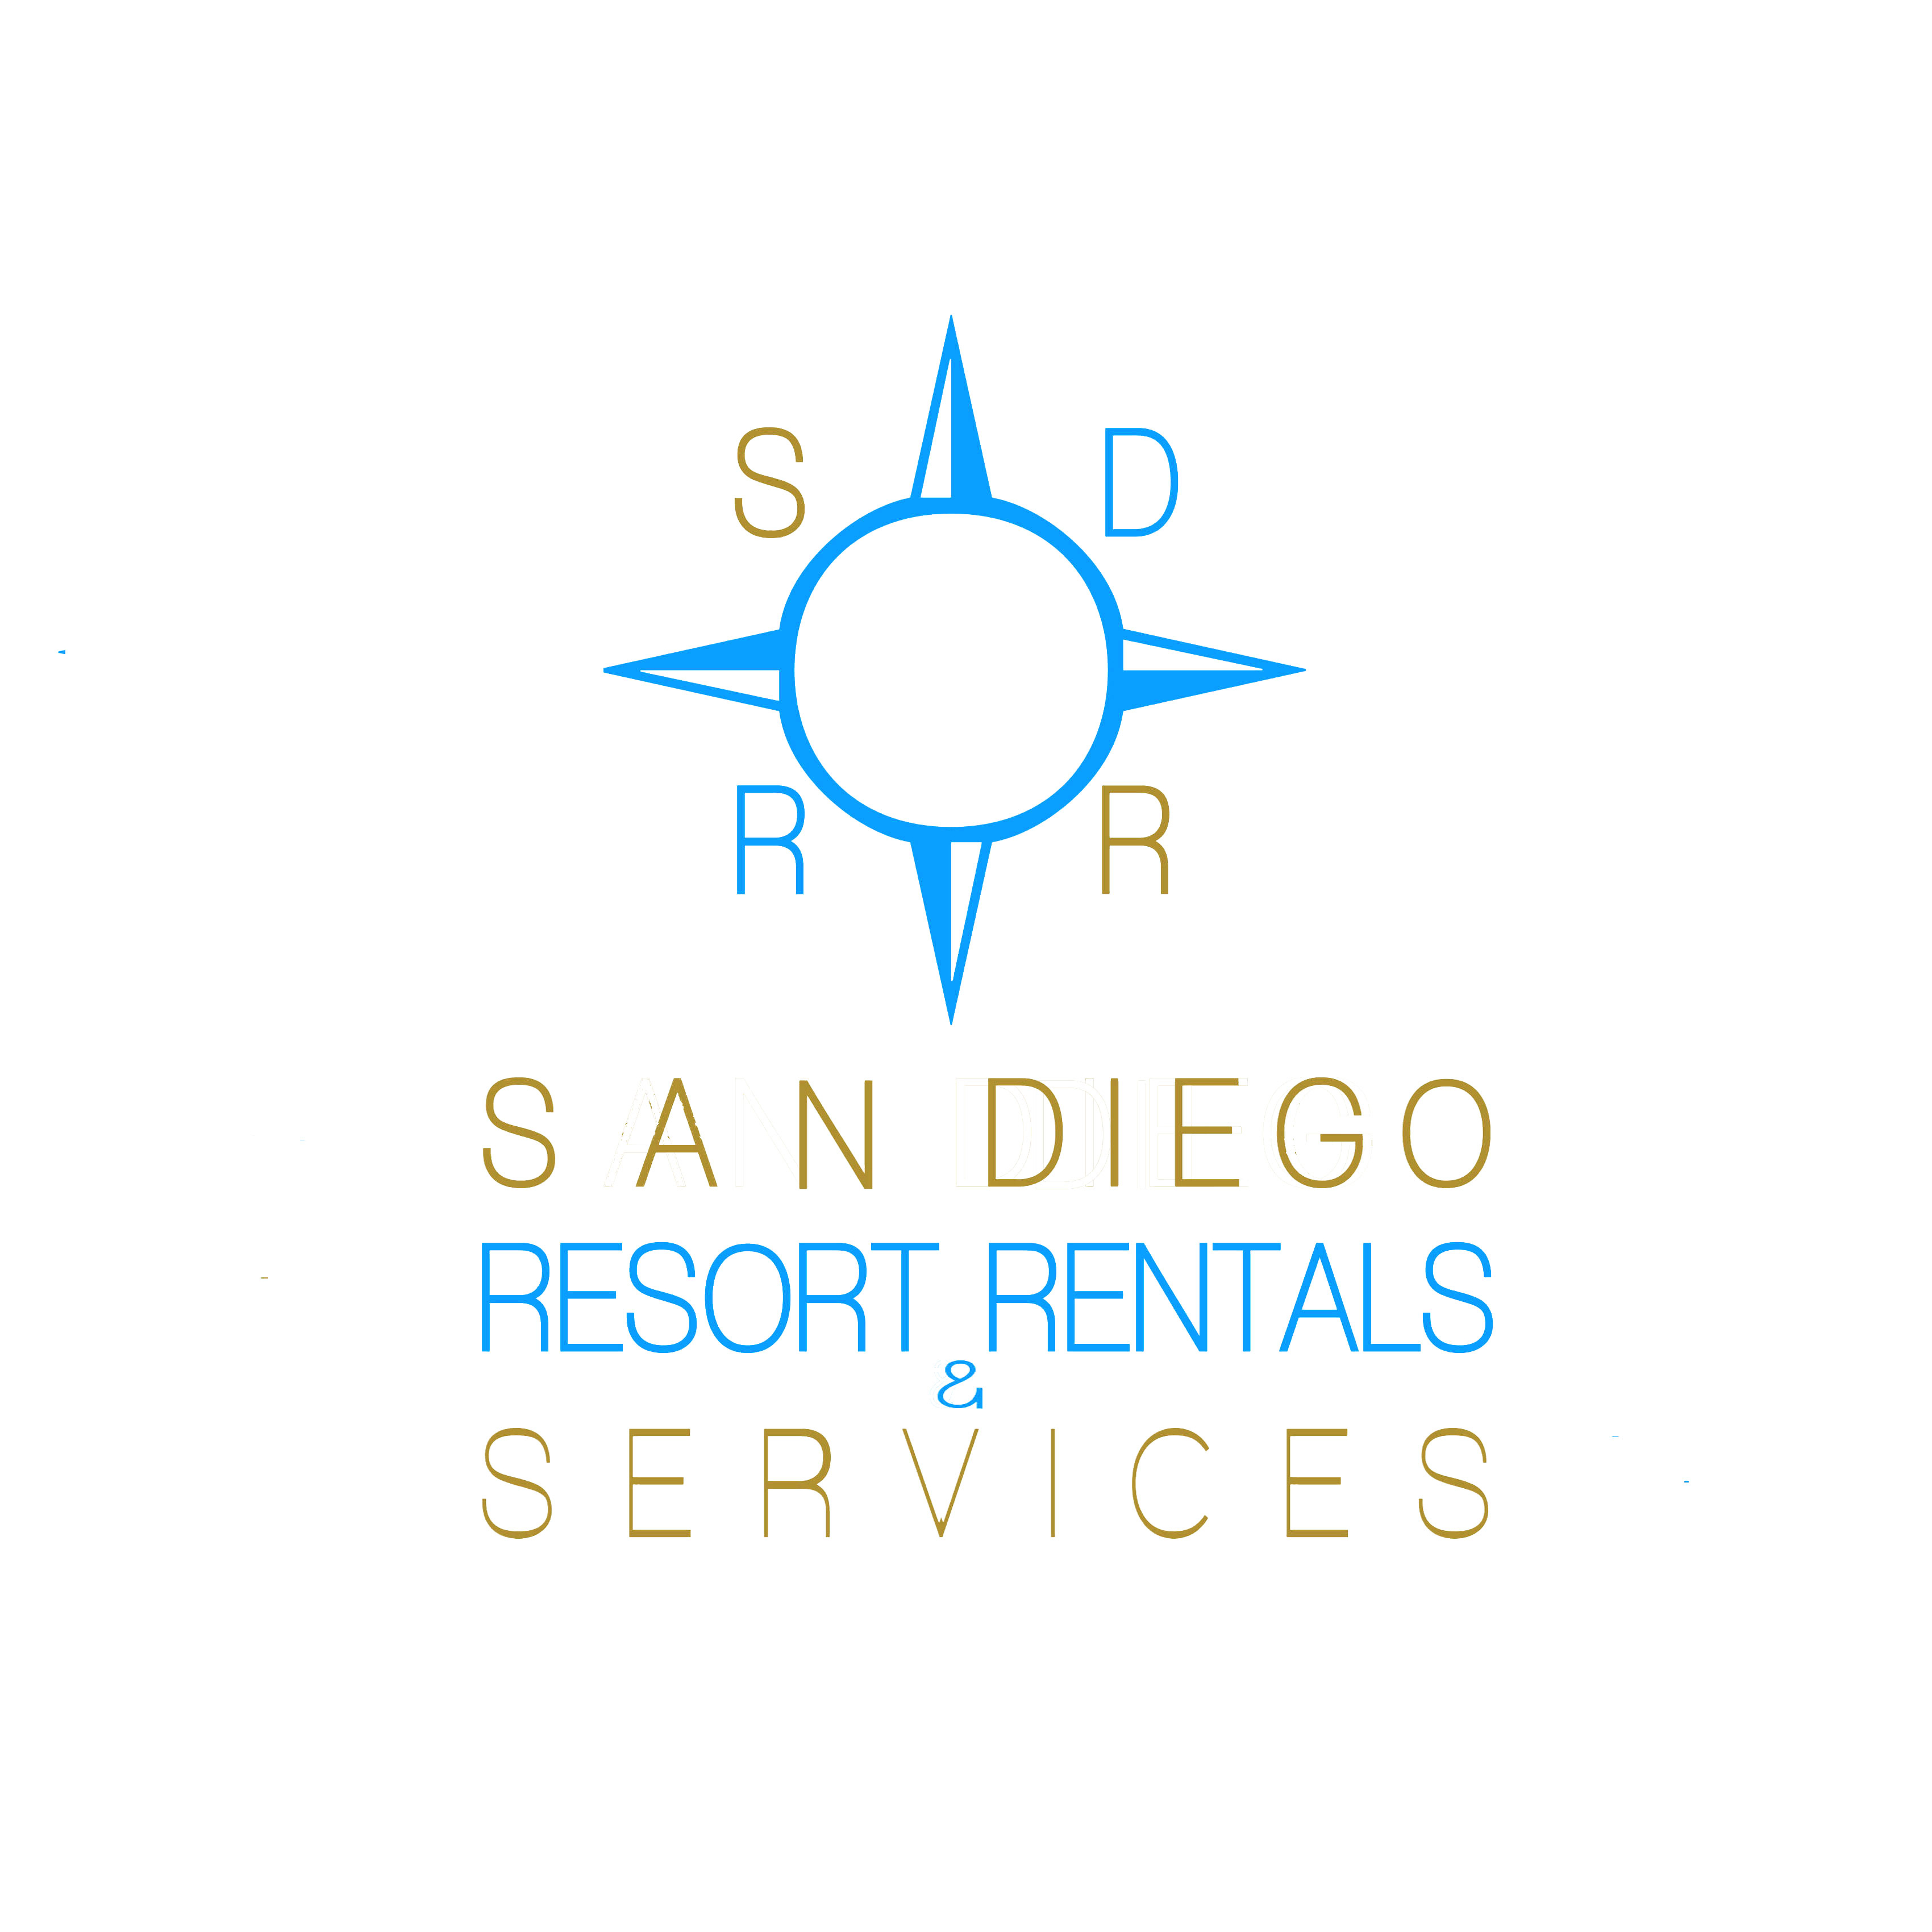 image of the San Diego Resort Rentals